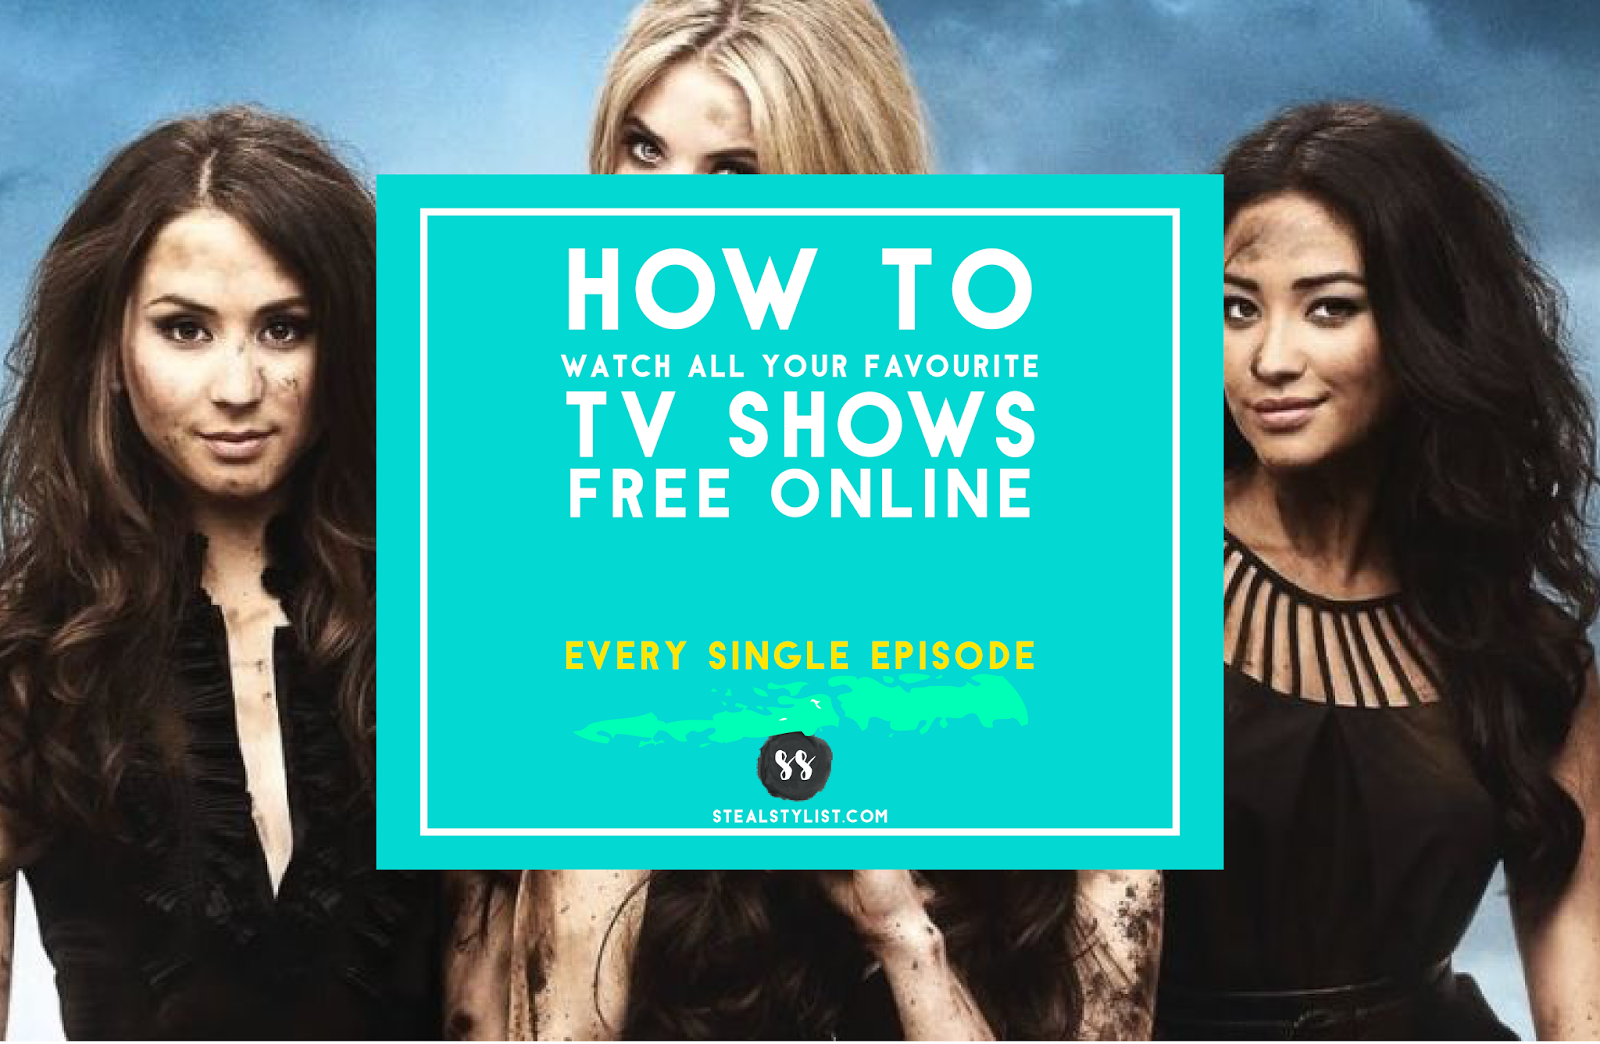 STREAM ALL YOUR FAVOURITE TV SHOWS AND MOVIES ONLINE FOR FREE!